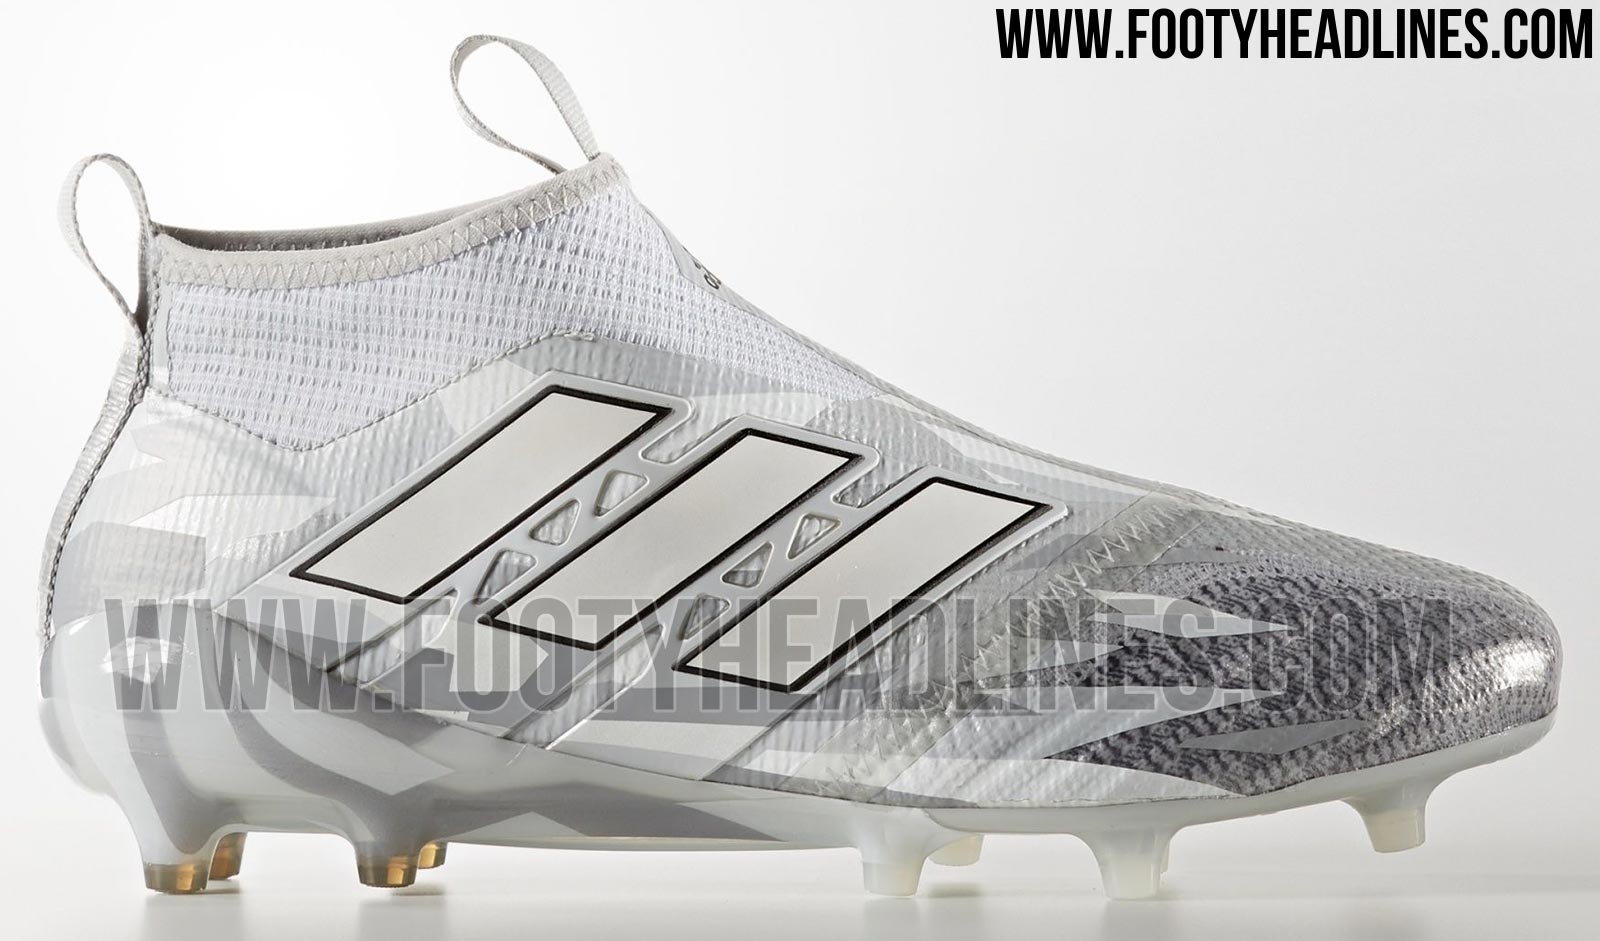 adidas camouflage football boots